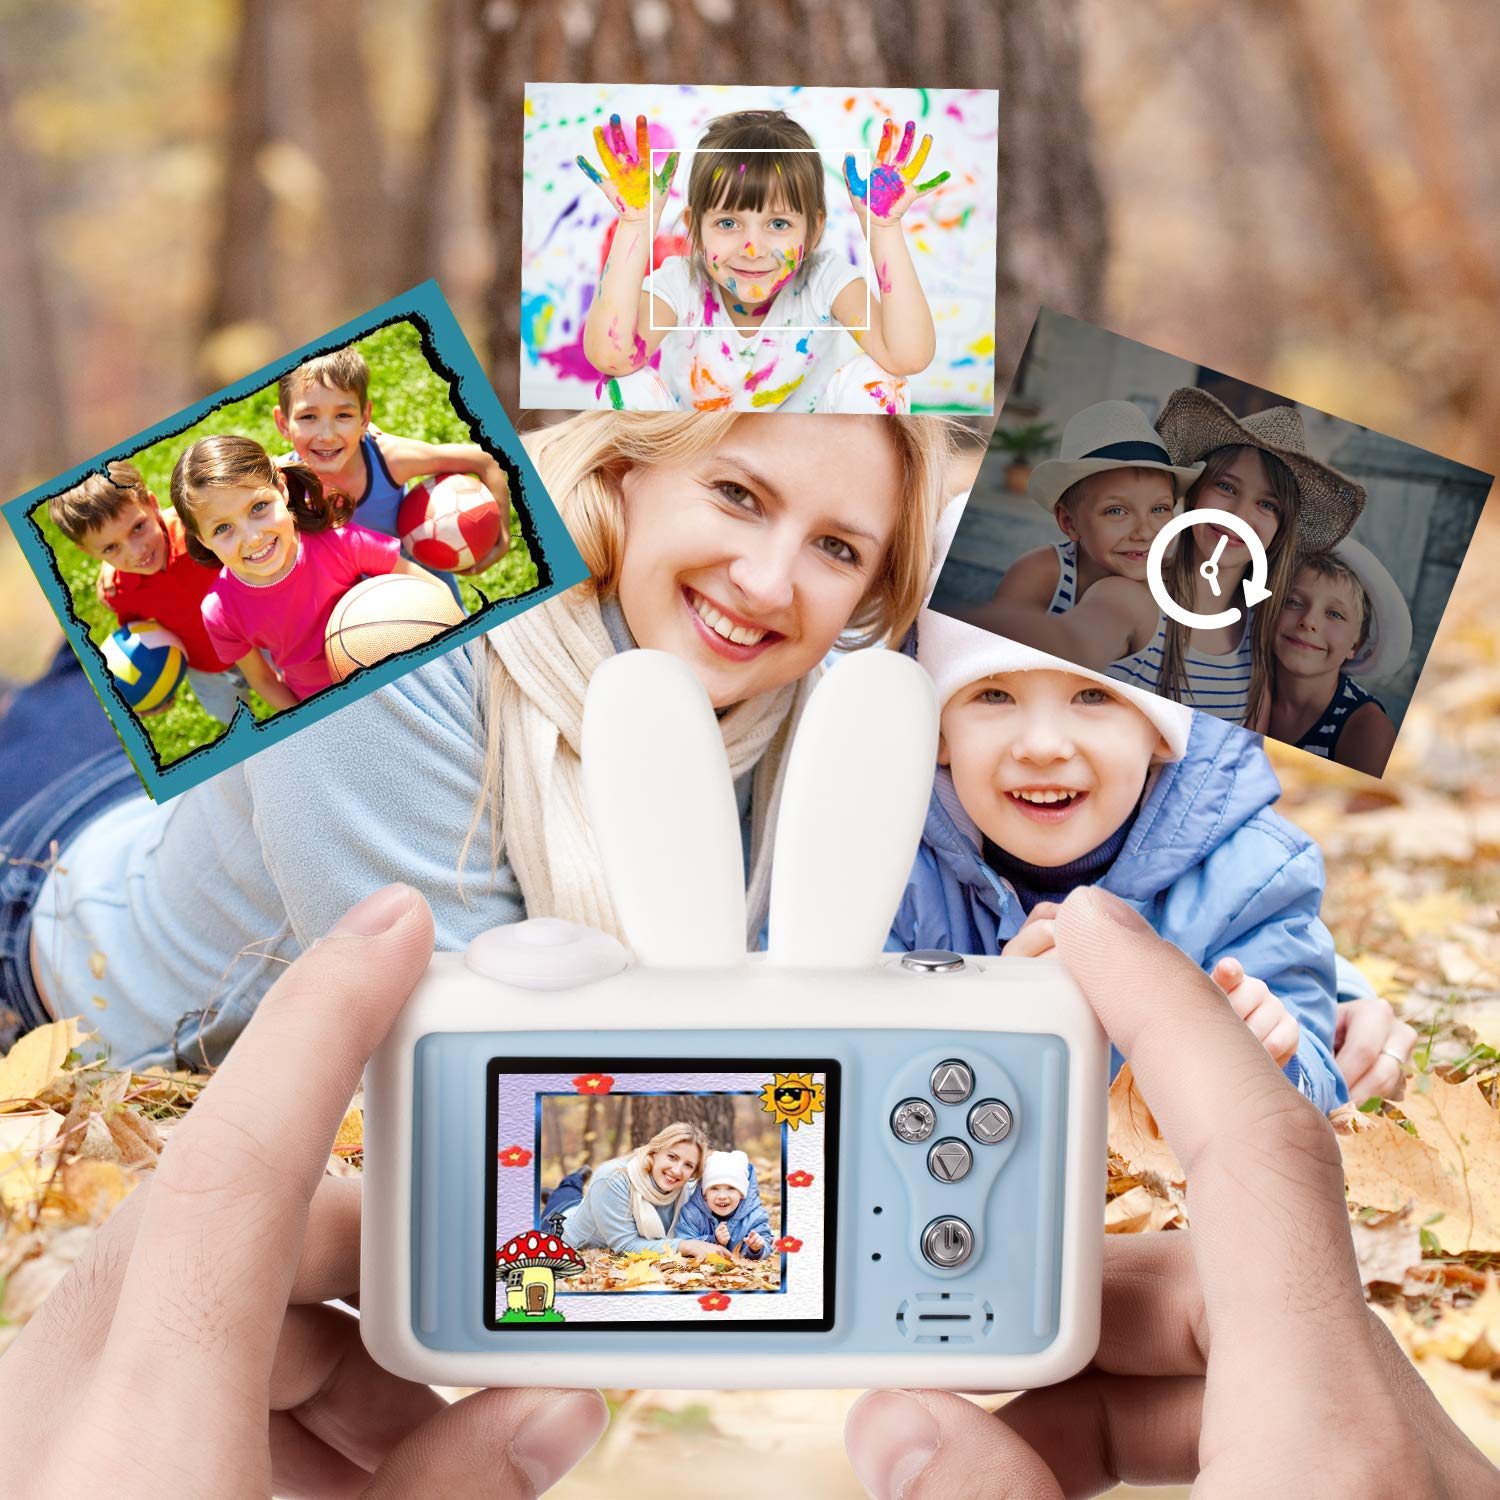 Abdtech Gifts Rabbit Kids Camera, Rechargeable Digital Cameras with Shockproof Soft Cover, Mini Toy Cameras for 5-10 Years Old Girl Boys Including 16GB SD Card, Perfect for Birthday Festival Presents by Abdtech (Image #5)